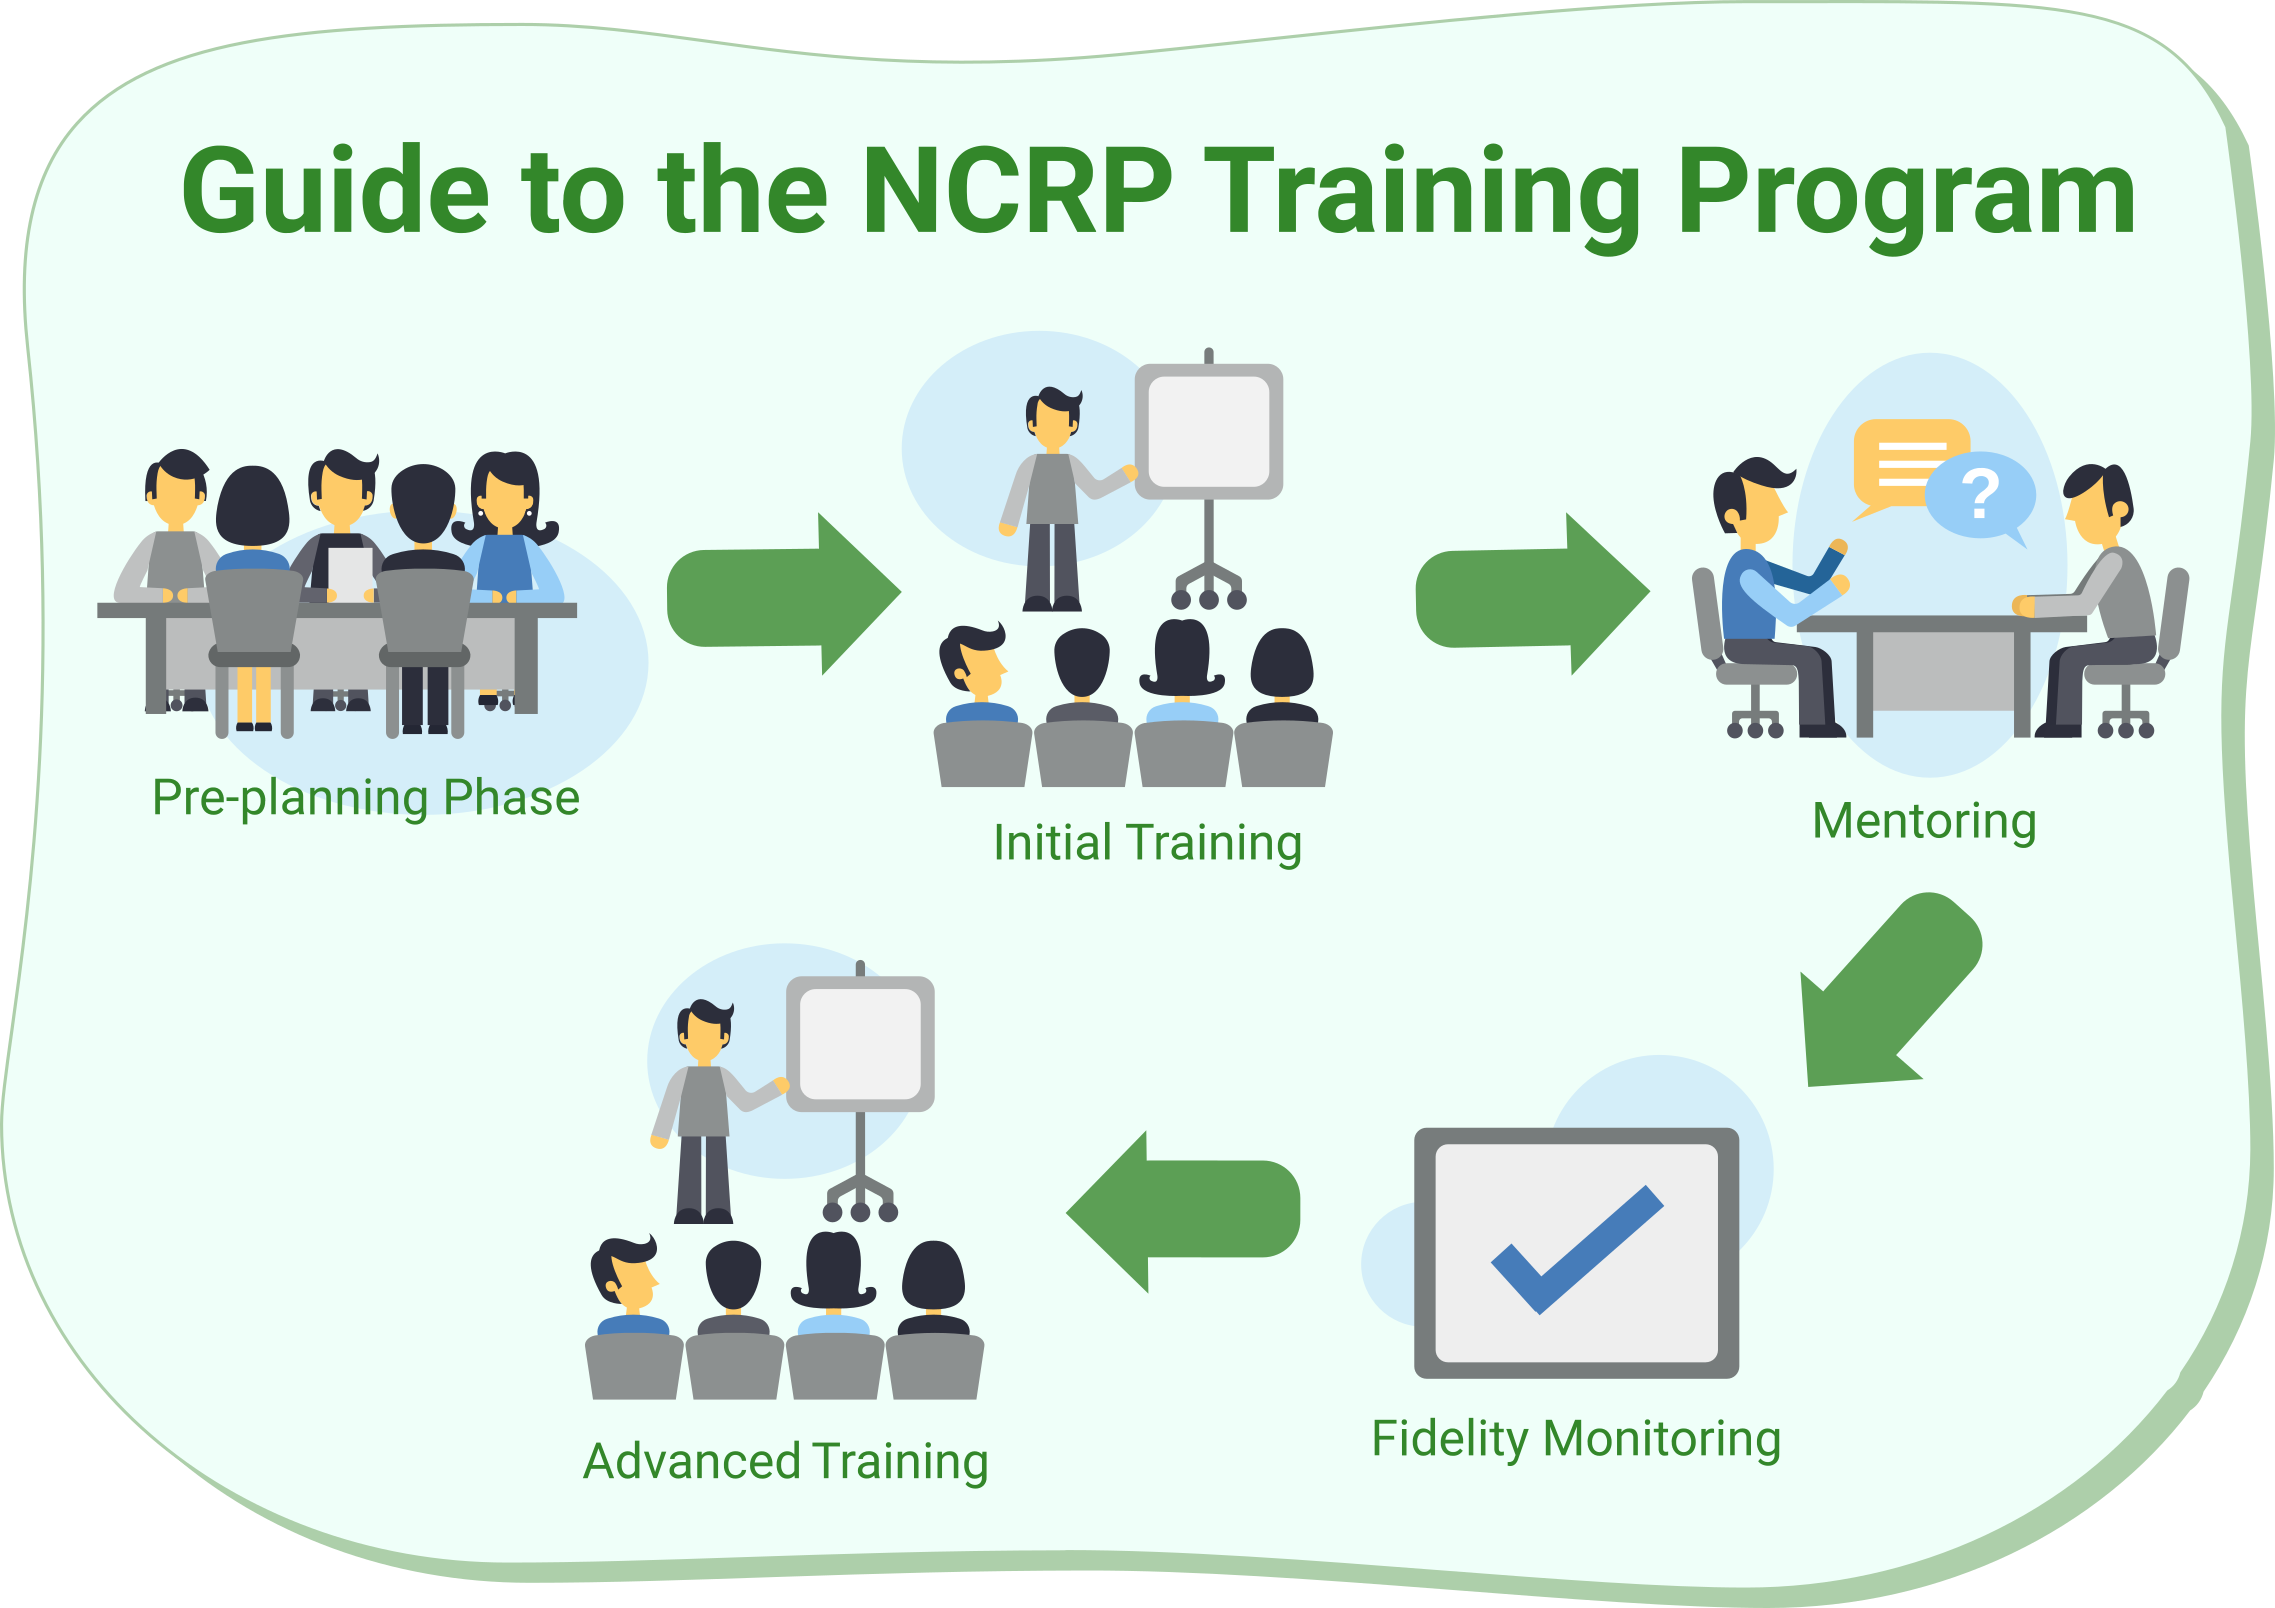 Pre-planning phase, Initial Training, Mentoring, Fidelity Monitoring, and Advanced Training